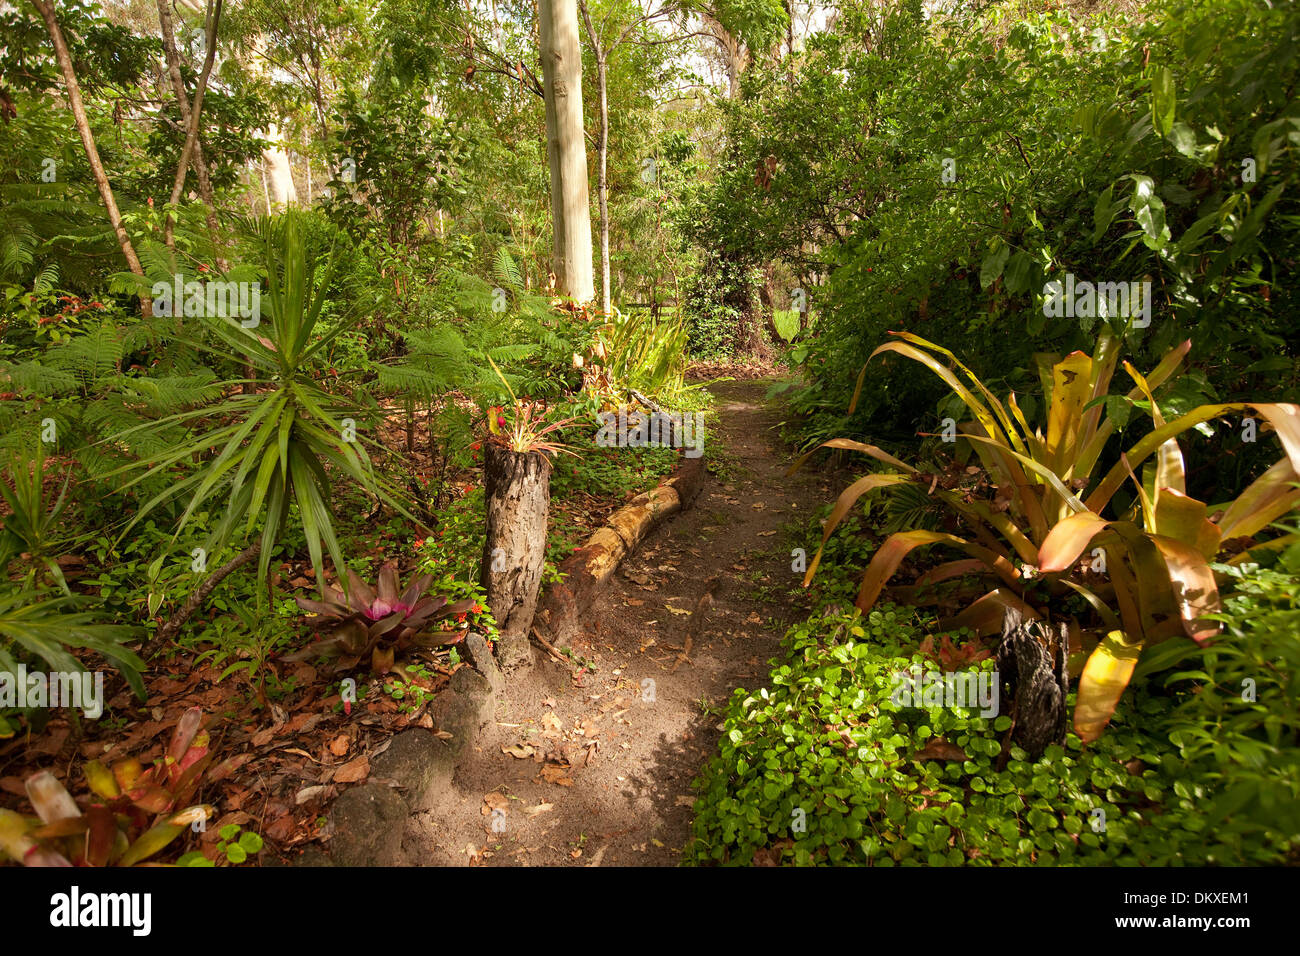 Pathway leading through forested sub-tropical garden with bromeliads ...